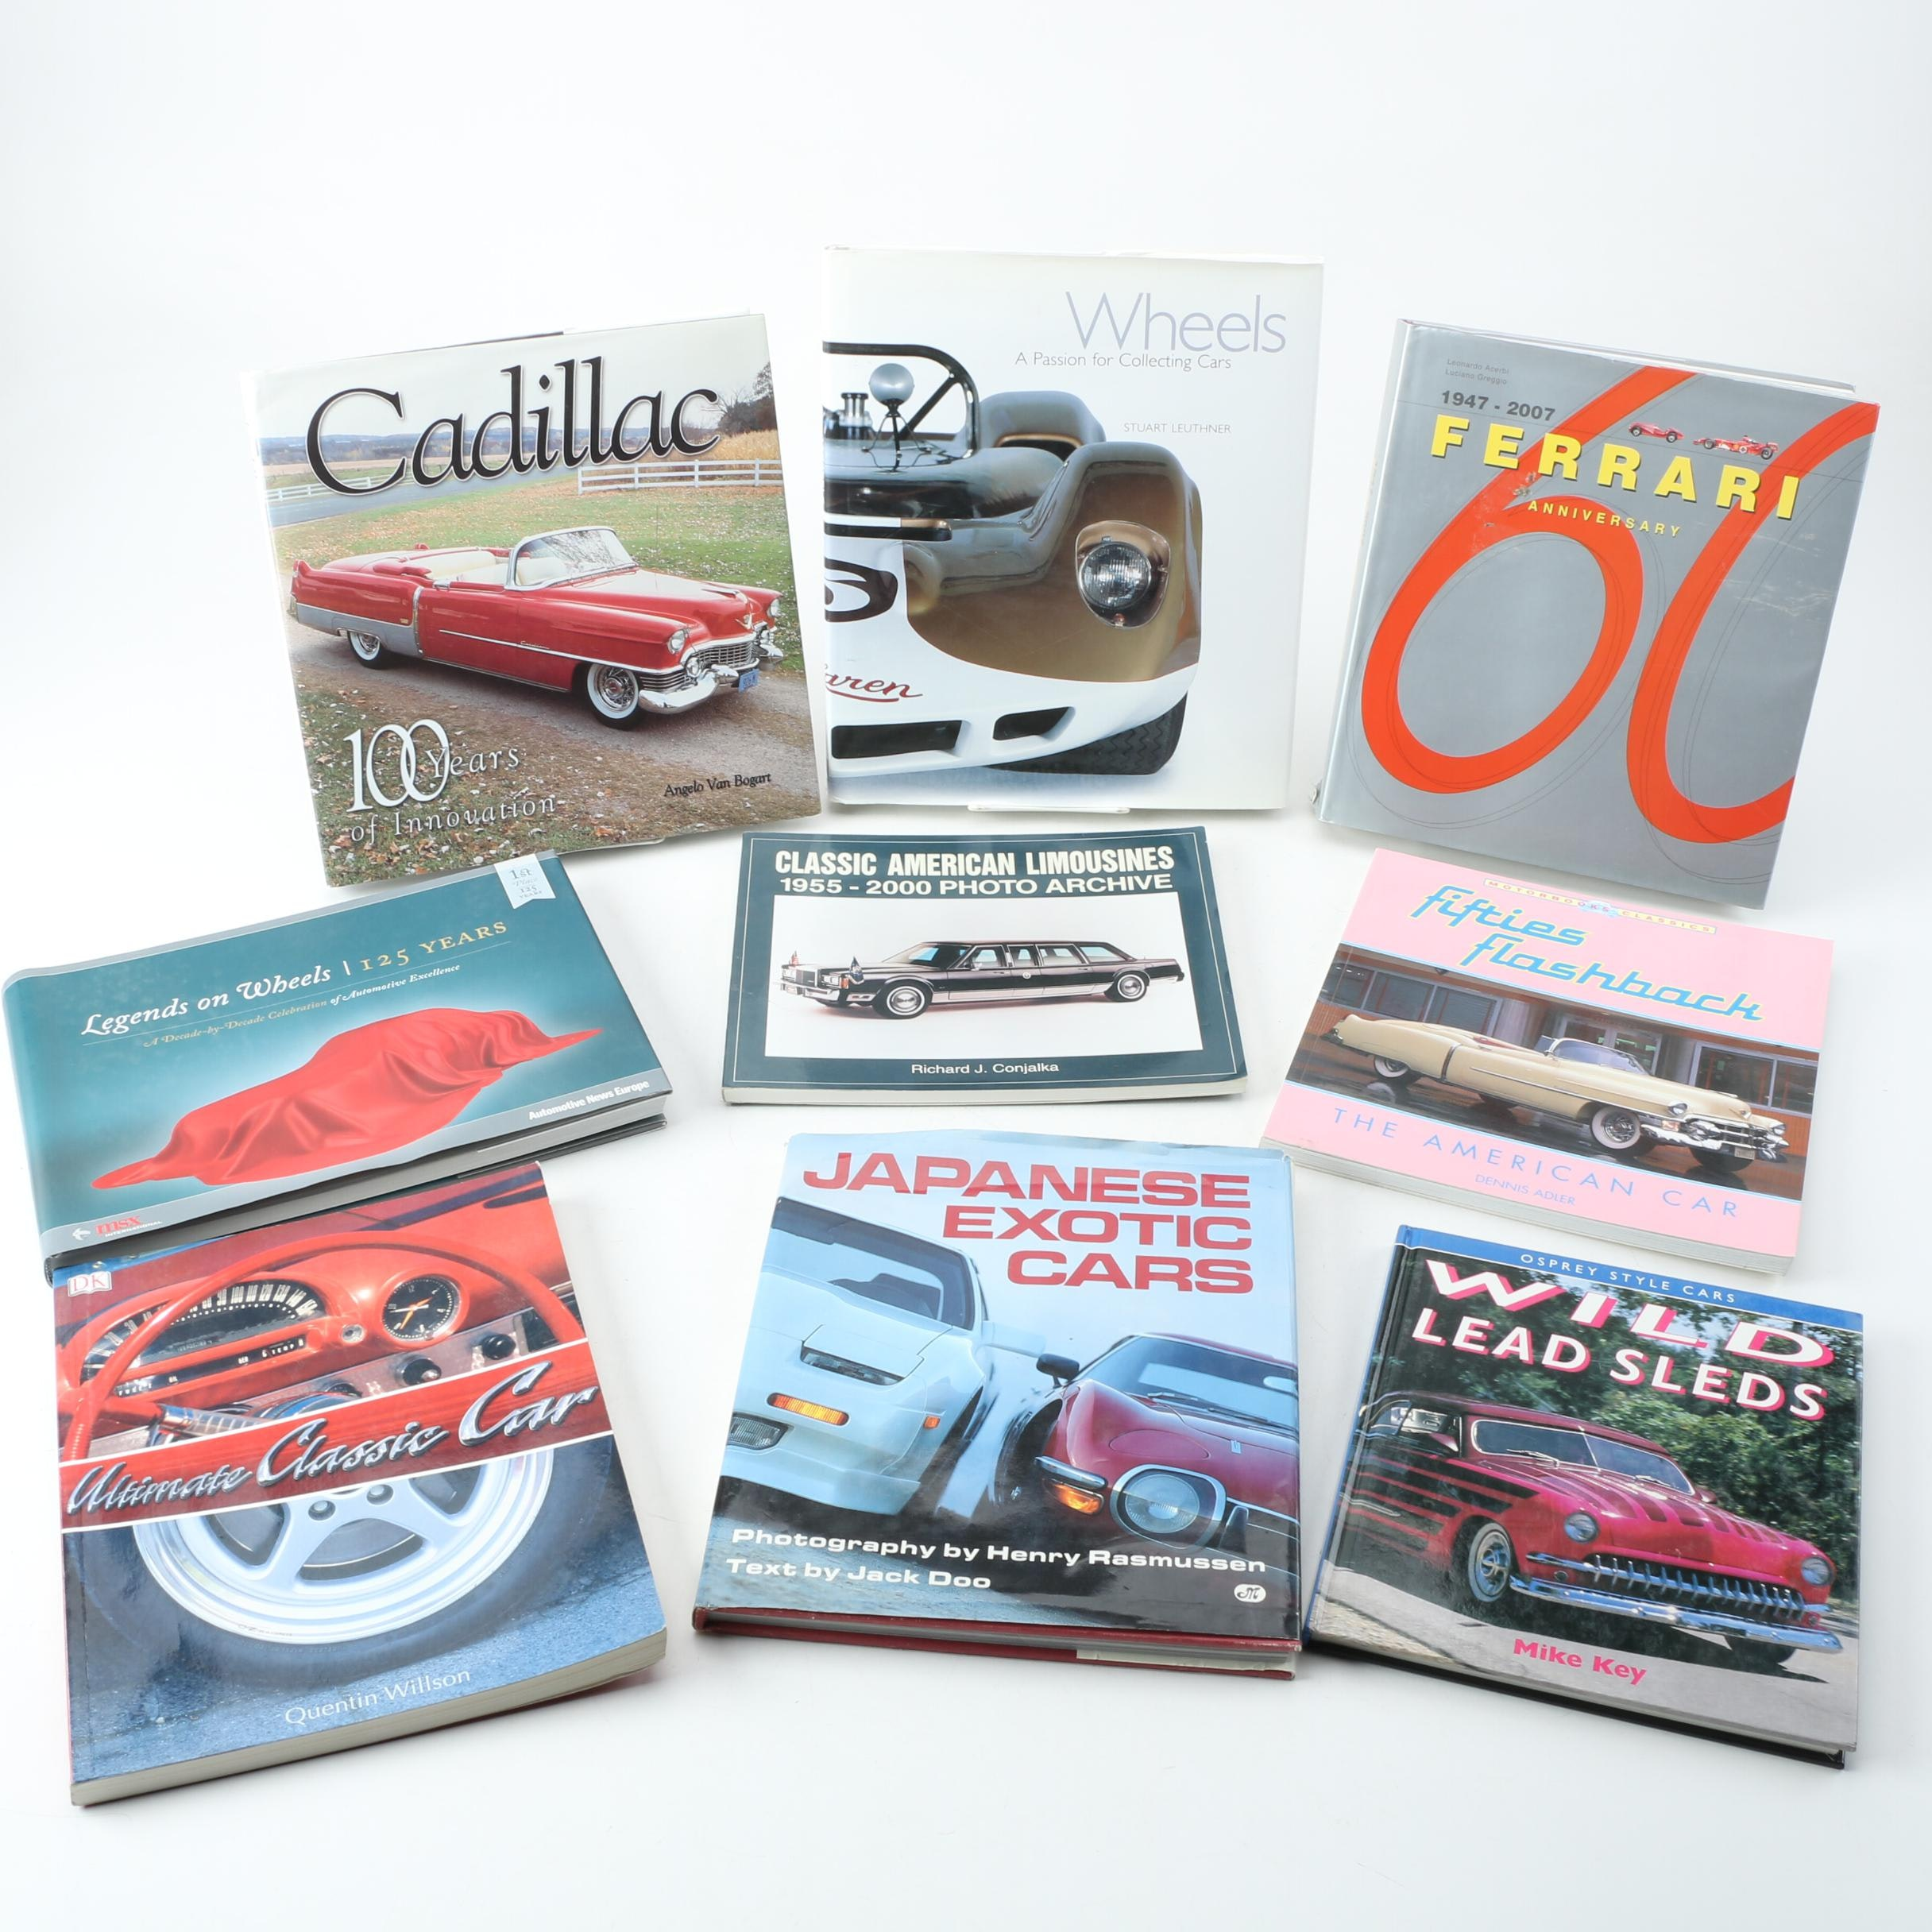 """""""Ferrari 1947-2007"""", """"Cadillac 100 Years"""", and Other Automotive Books"""